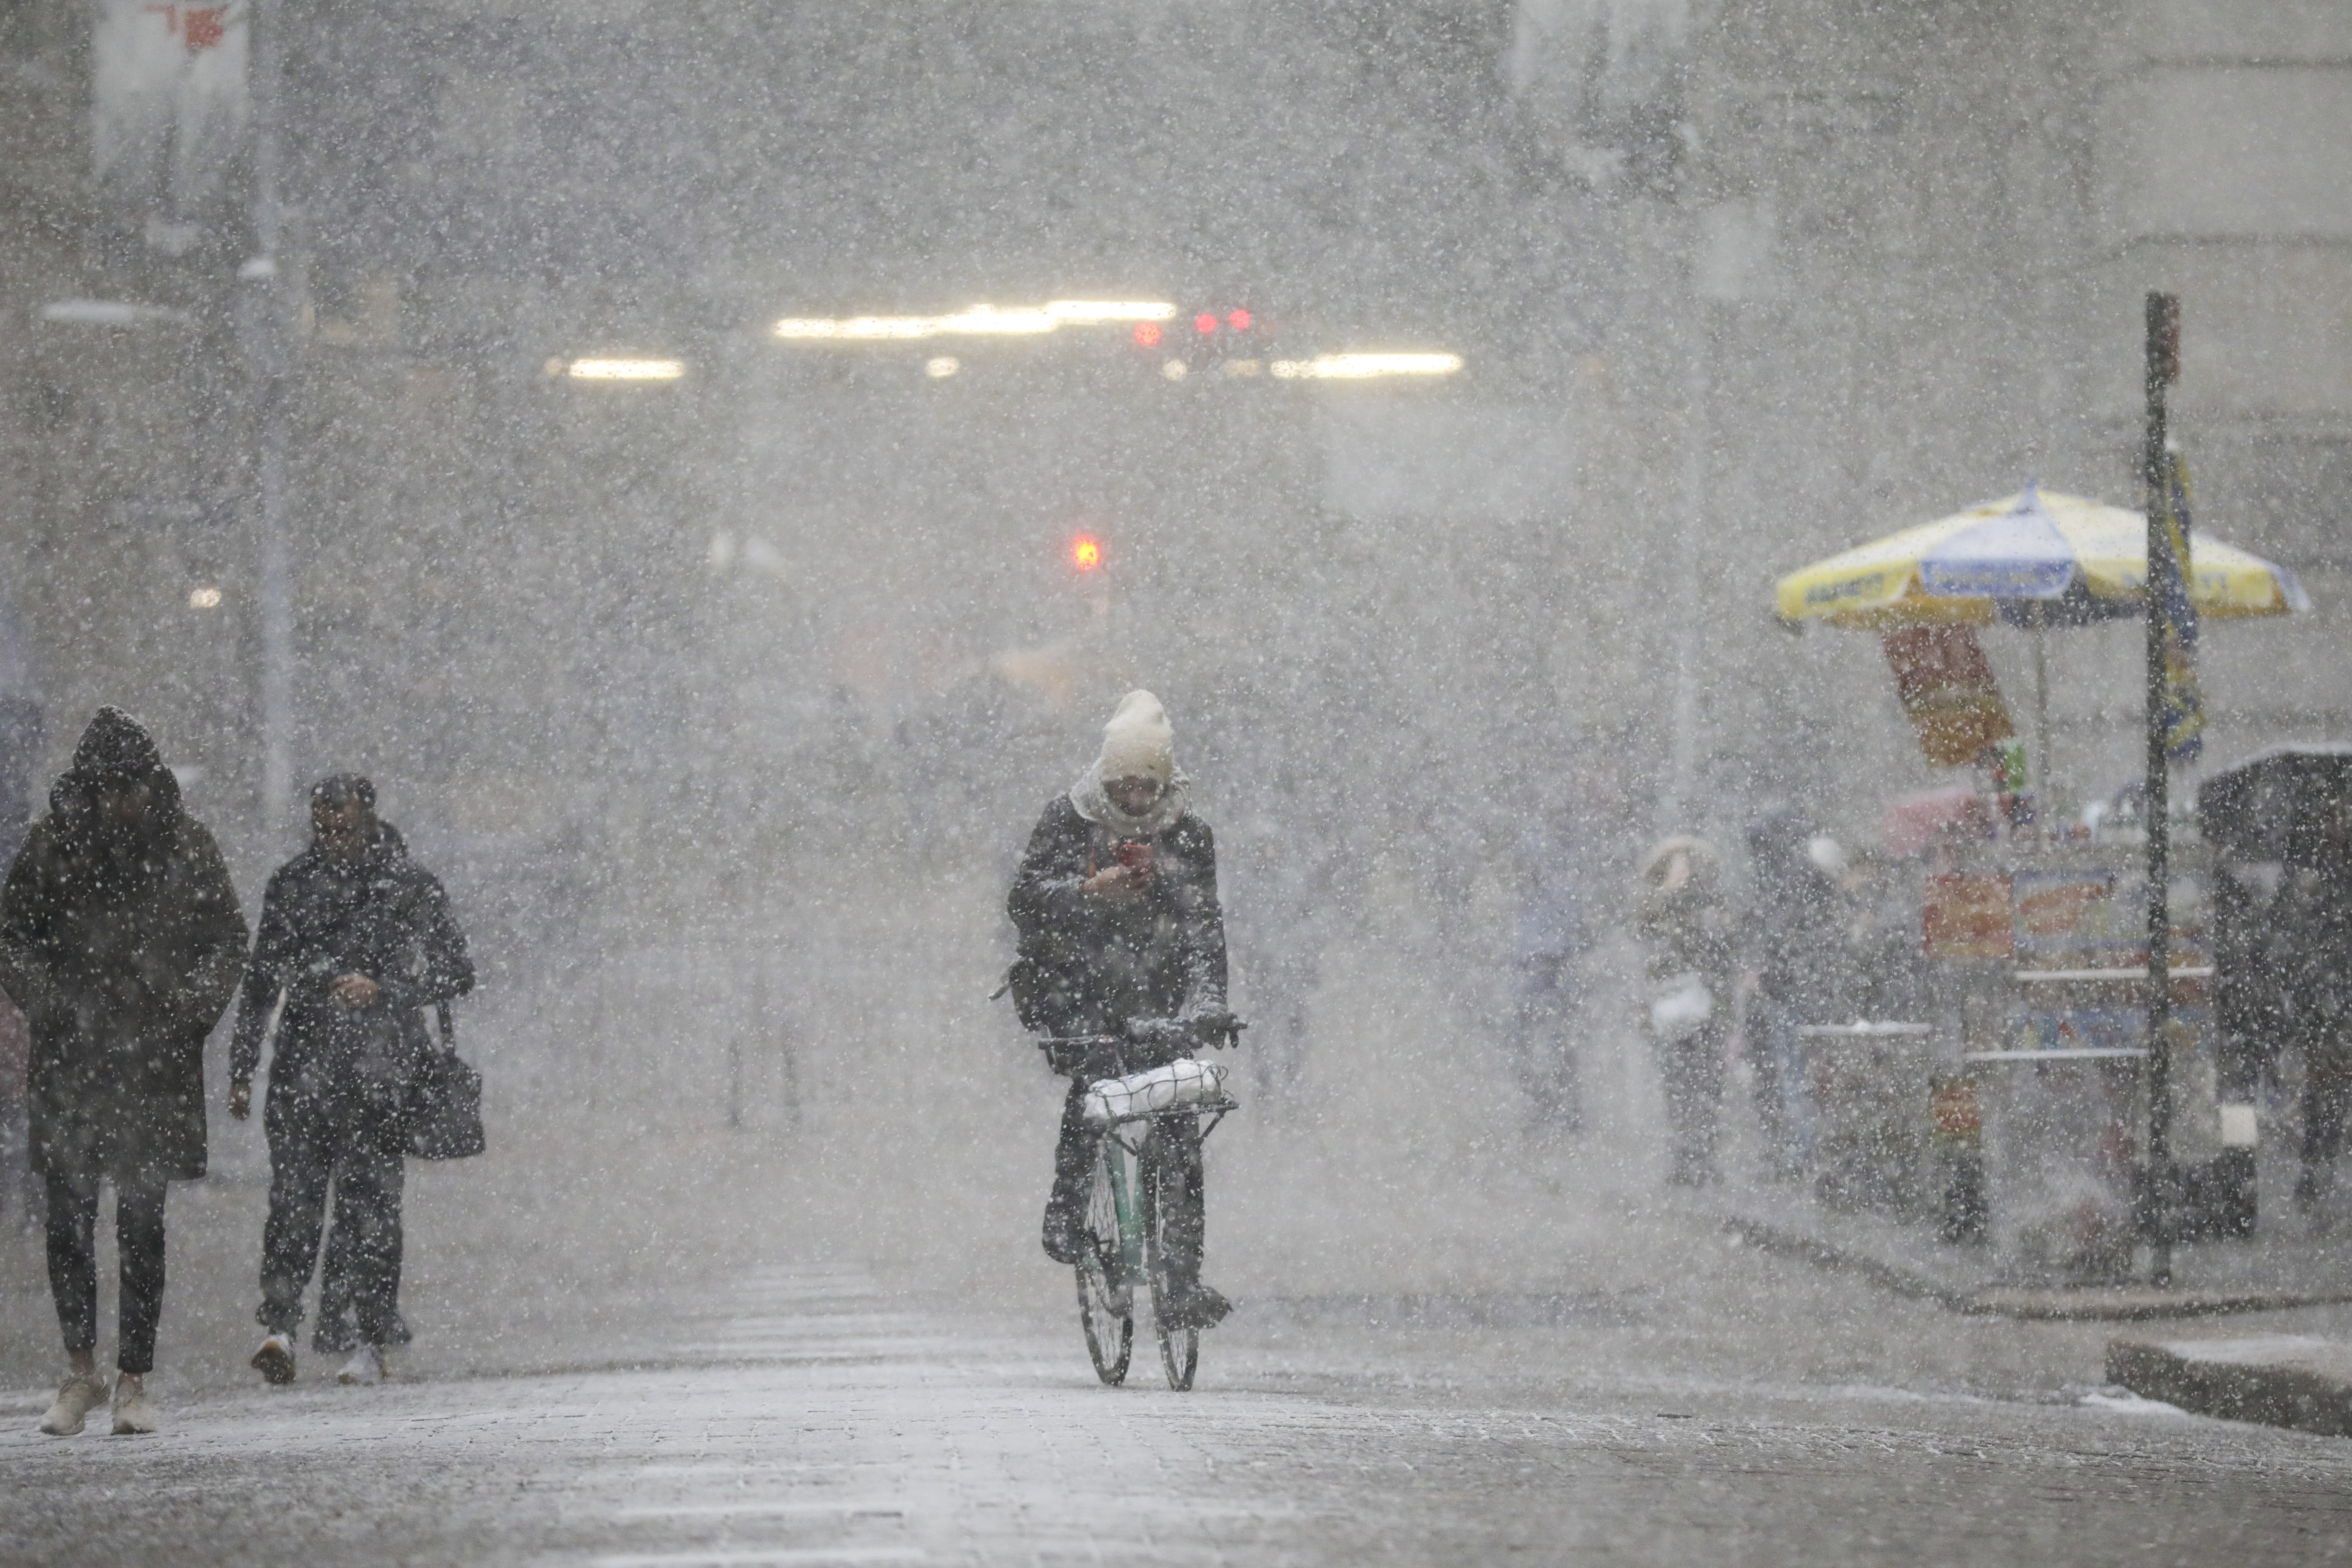 NEW YORK, NY - JANUARY 30: A cyclist rides through the falling snow in the Financial District, January 30, 2019 in New York City. The frigid air from the polar vortex in the Midwest will expand into the New York over the next few days. (Photo by Drew Angerer/Getty Images)